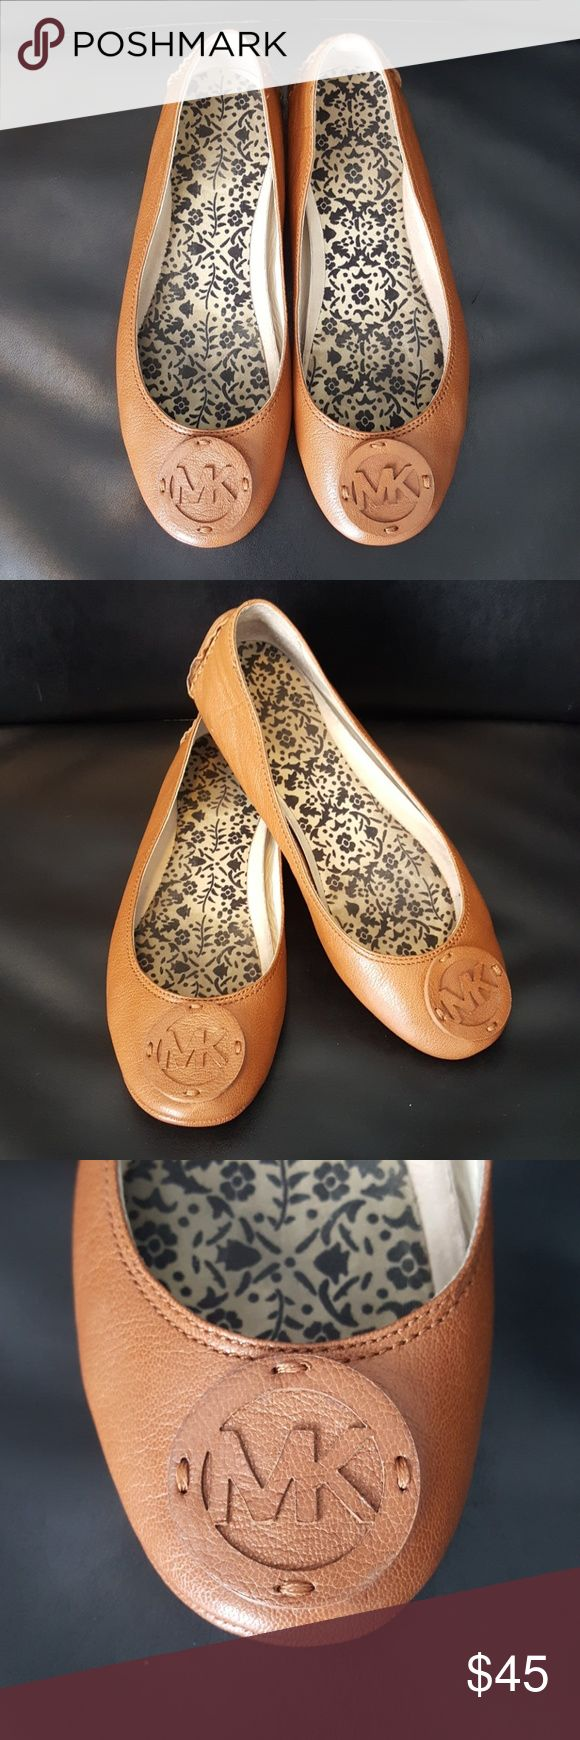 MICHAEL KORS Flats 6M Gorgeous pair of Michael Kors flats. Maybe worn a couple of times, there is an insert for added cushion. Shows minimal wear! 6M MICHAEL Michael Kors Shoes Flats & Loafers